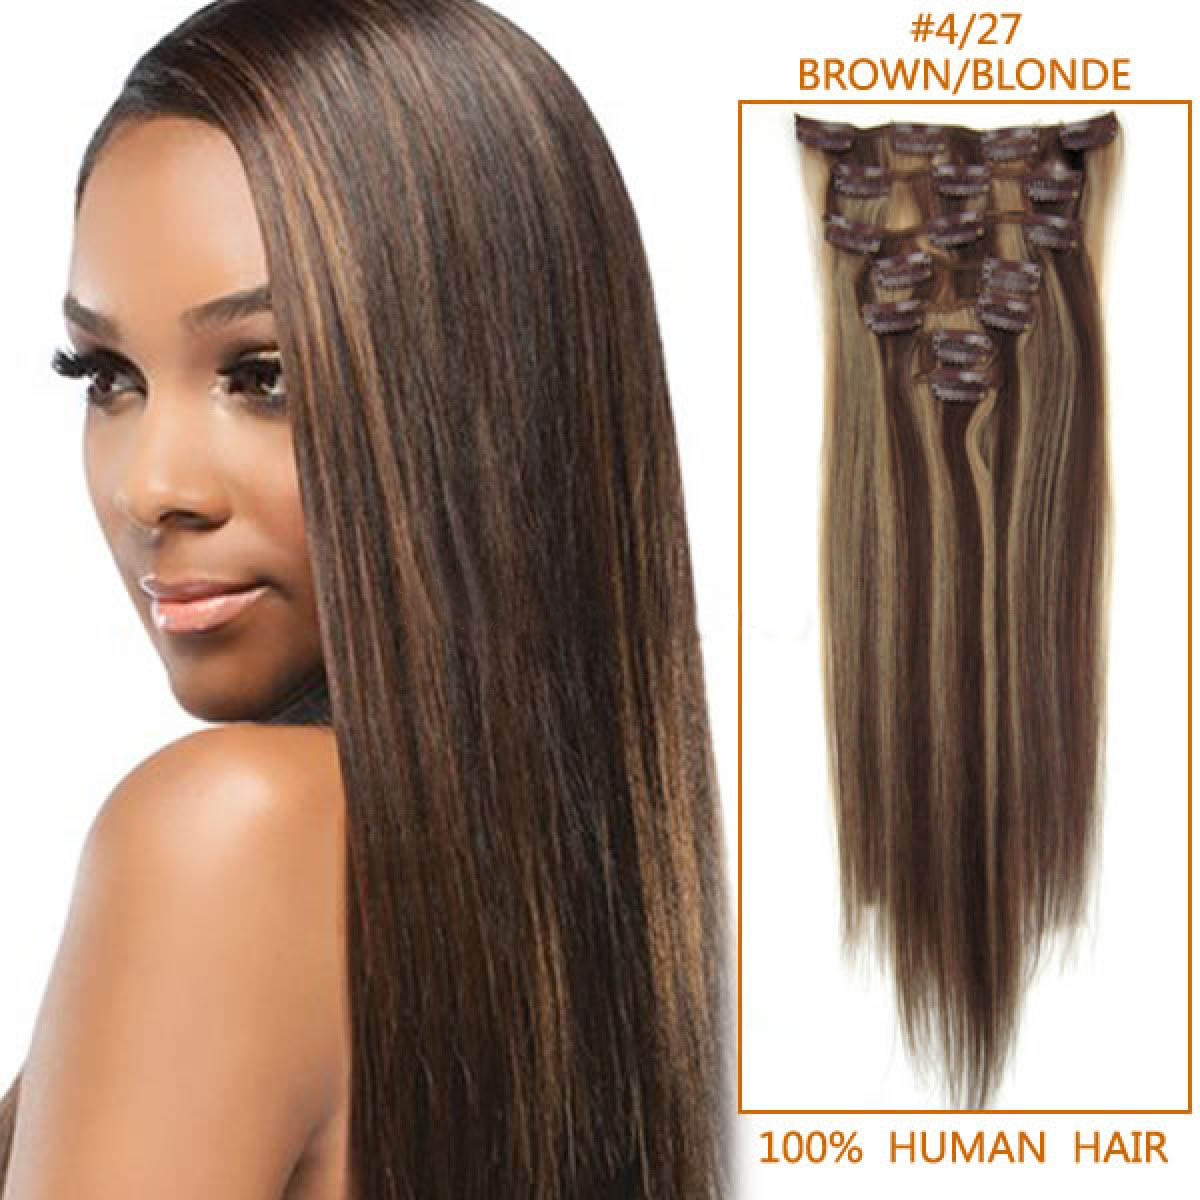 Best Remy Human Hair Extensions Choice Image Hair Extensions For